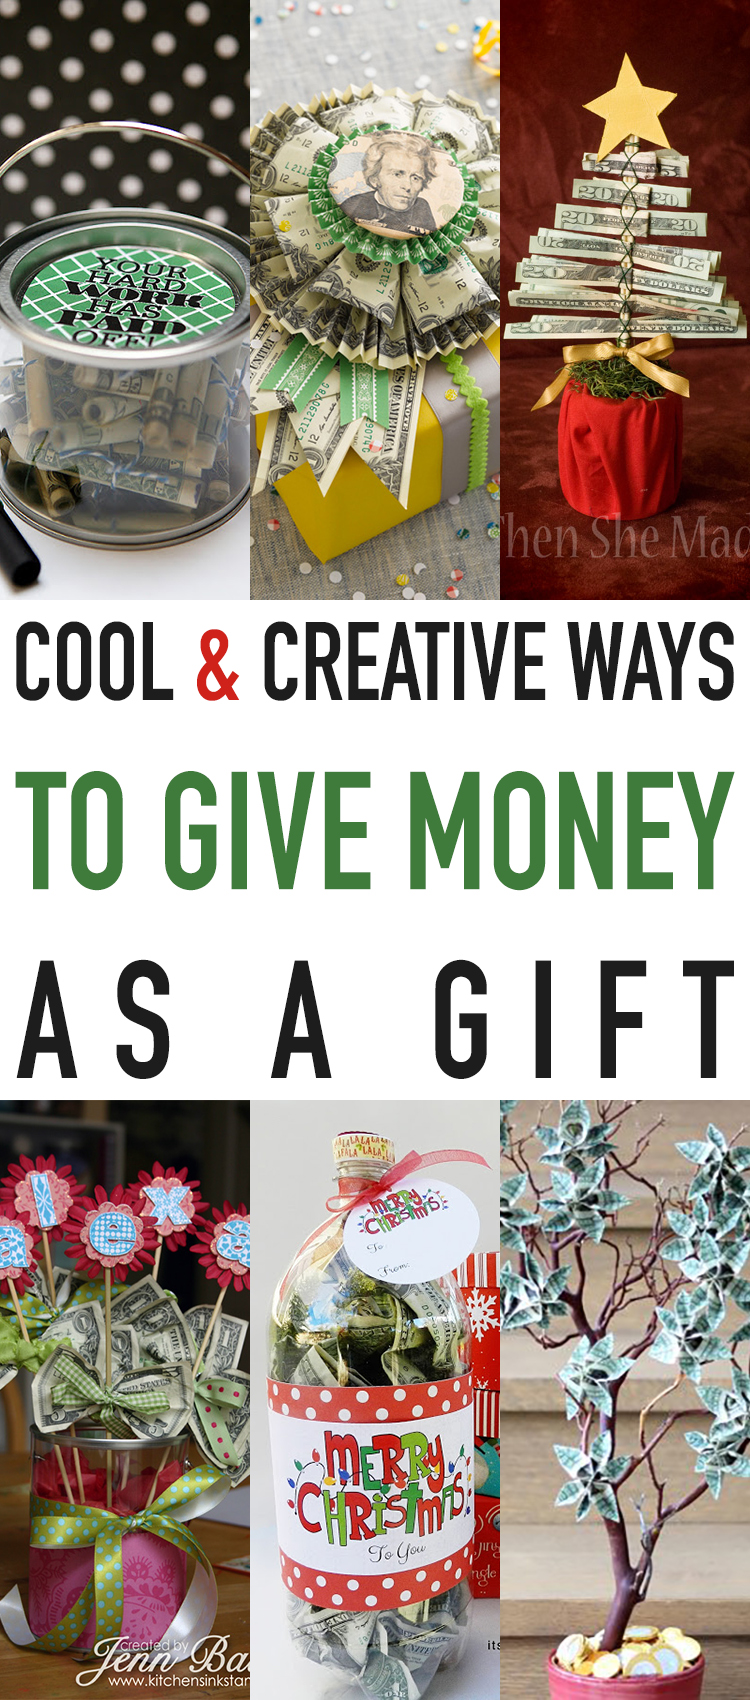 Cool and Creative Ways To Give Money As A Gift - The Cottage Market